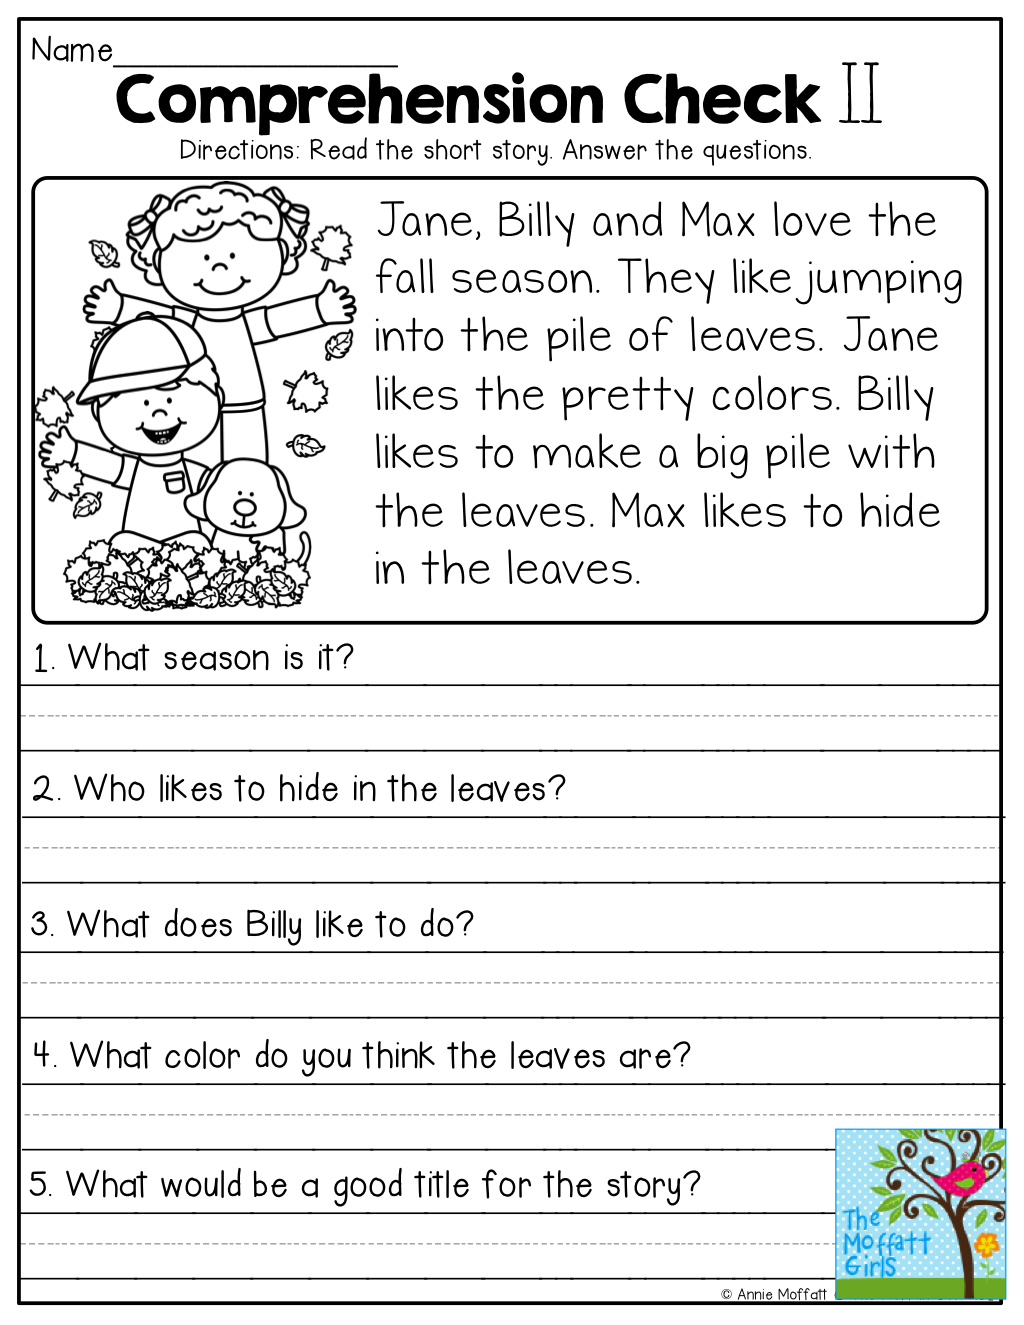 Worksheet First Grade Reading Skills comprehension checks and so many more useful printables reading read the simple story answer questions tons of great to help with grade level skills